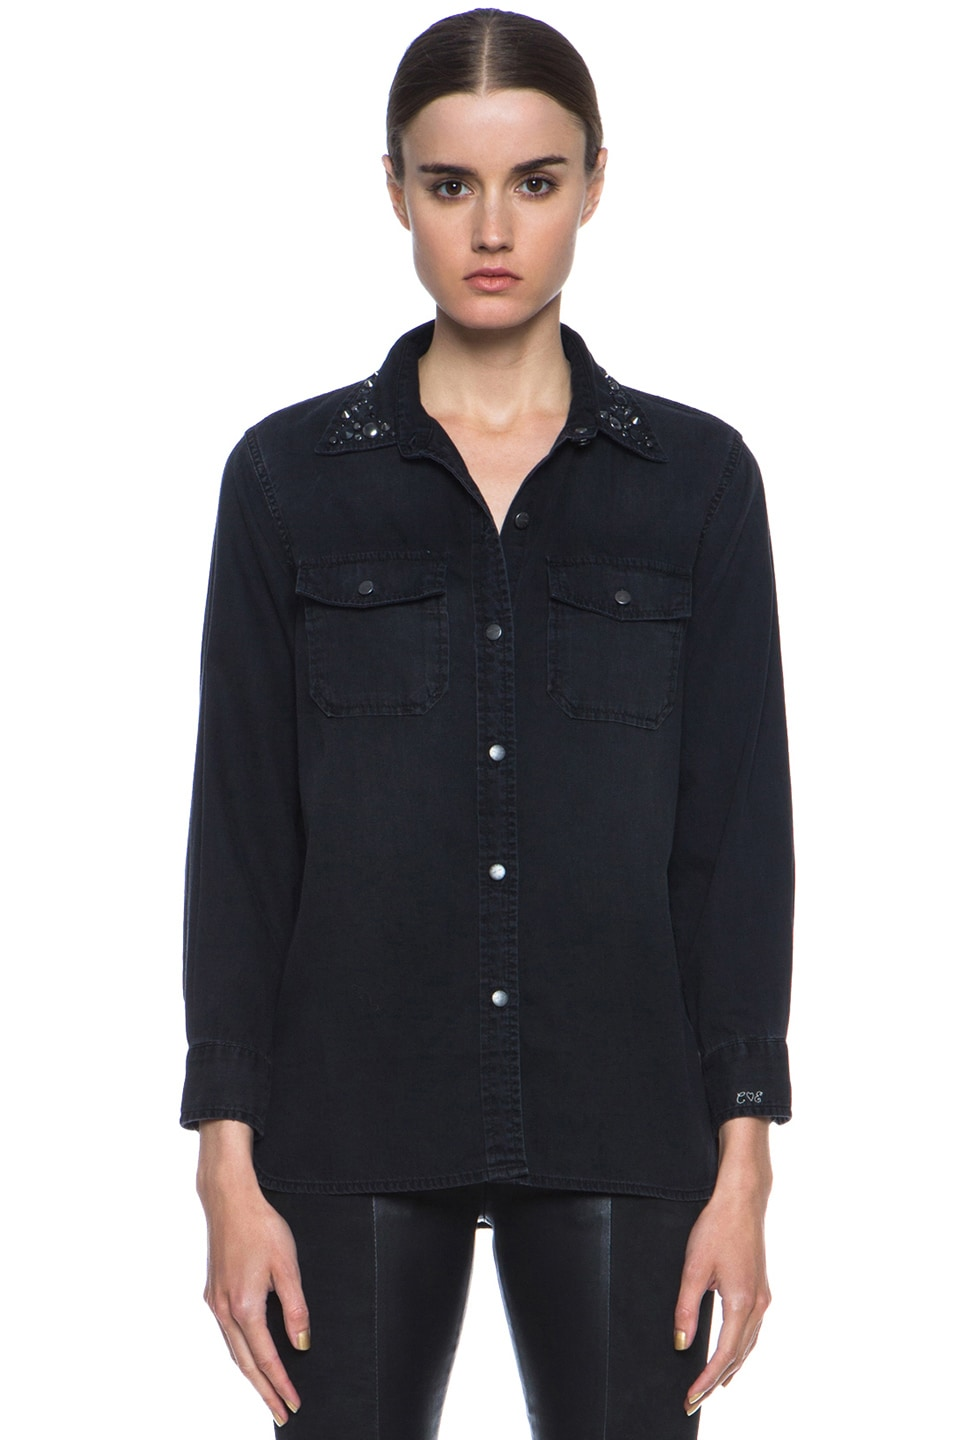 Image 1 of Current/Elliott Jean Perfect Shirt Without Epaulettes in Black & Jet